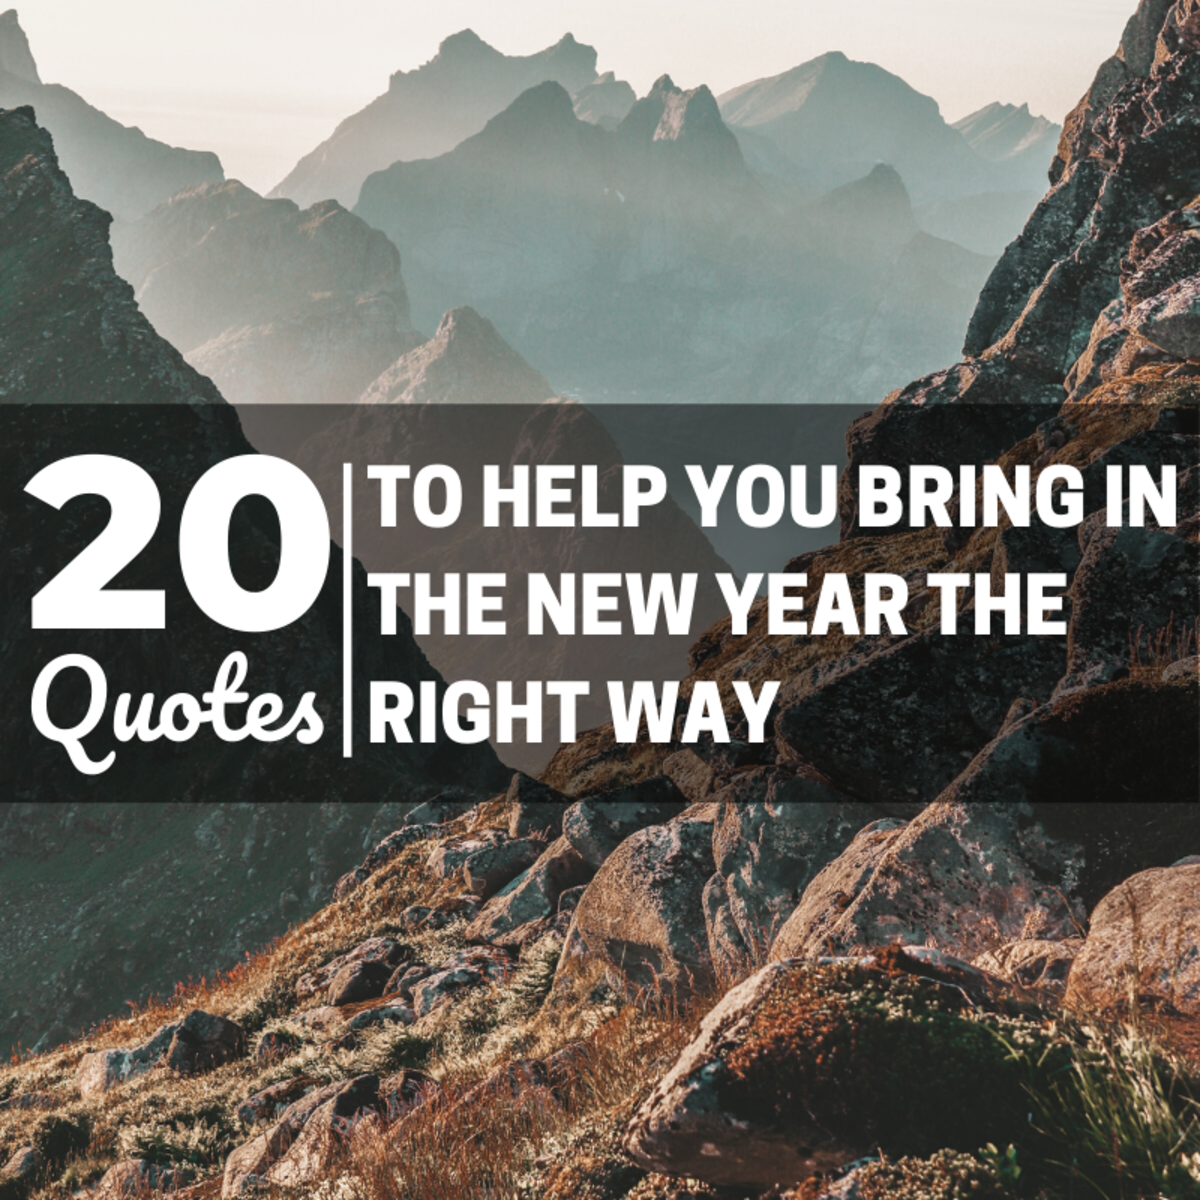 20 New Year Quotes to Help You Start the Year Mindfully